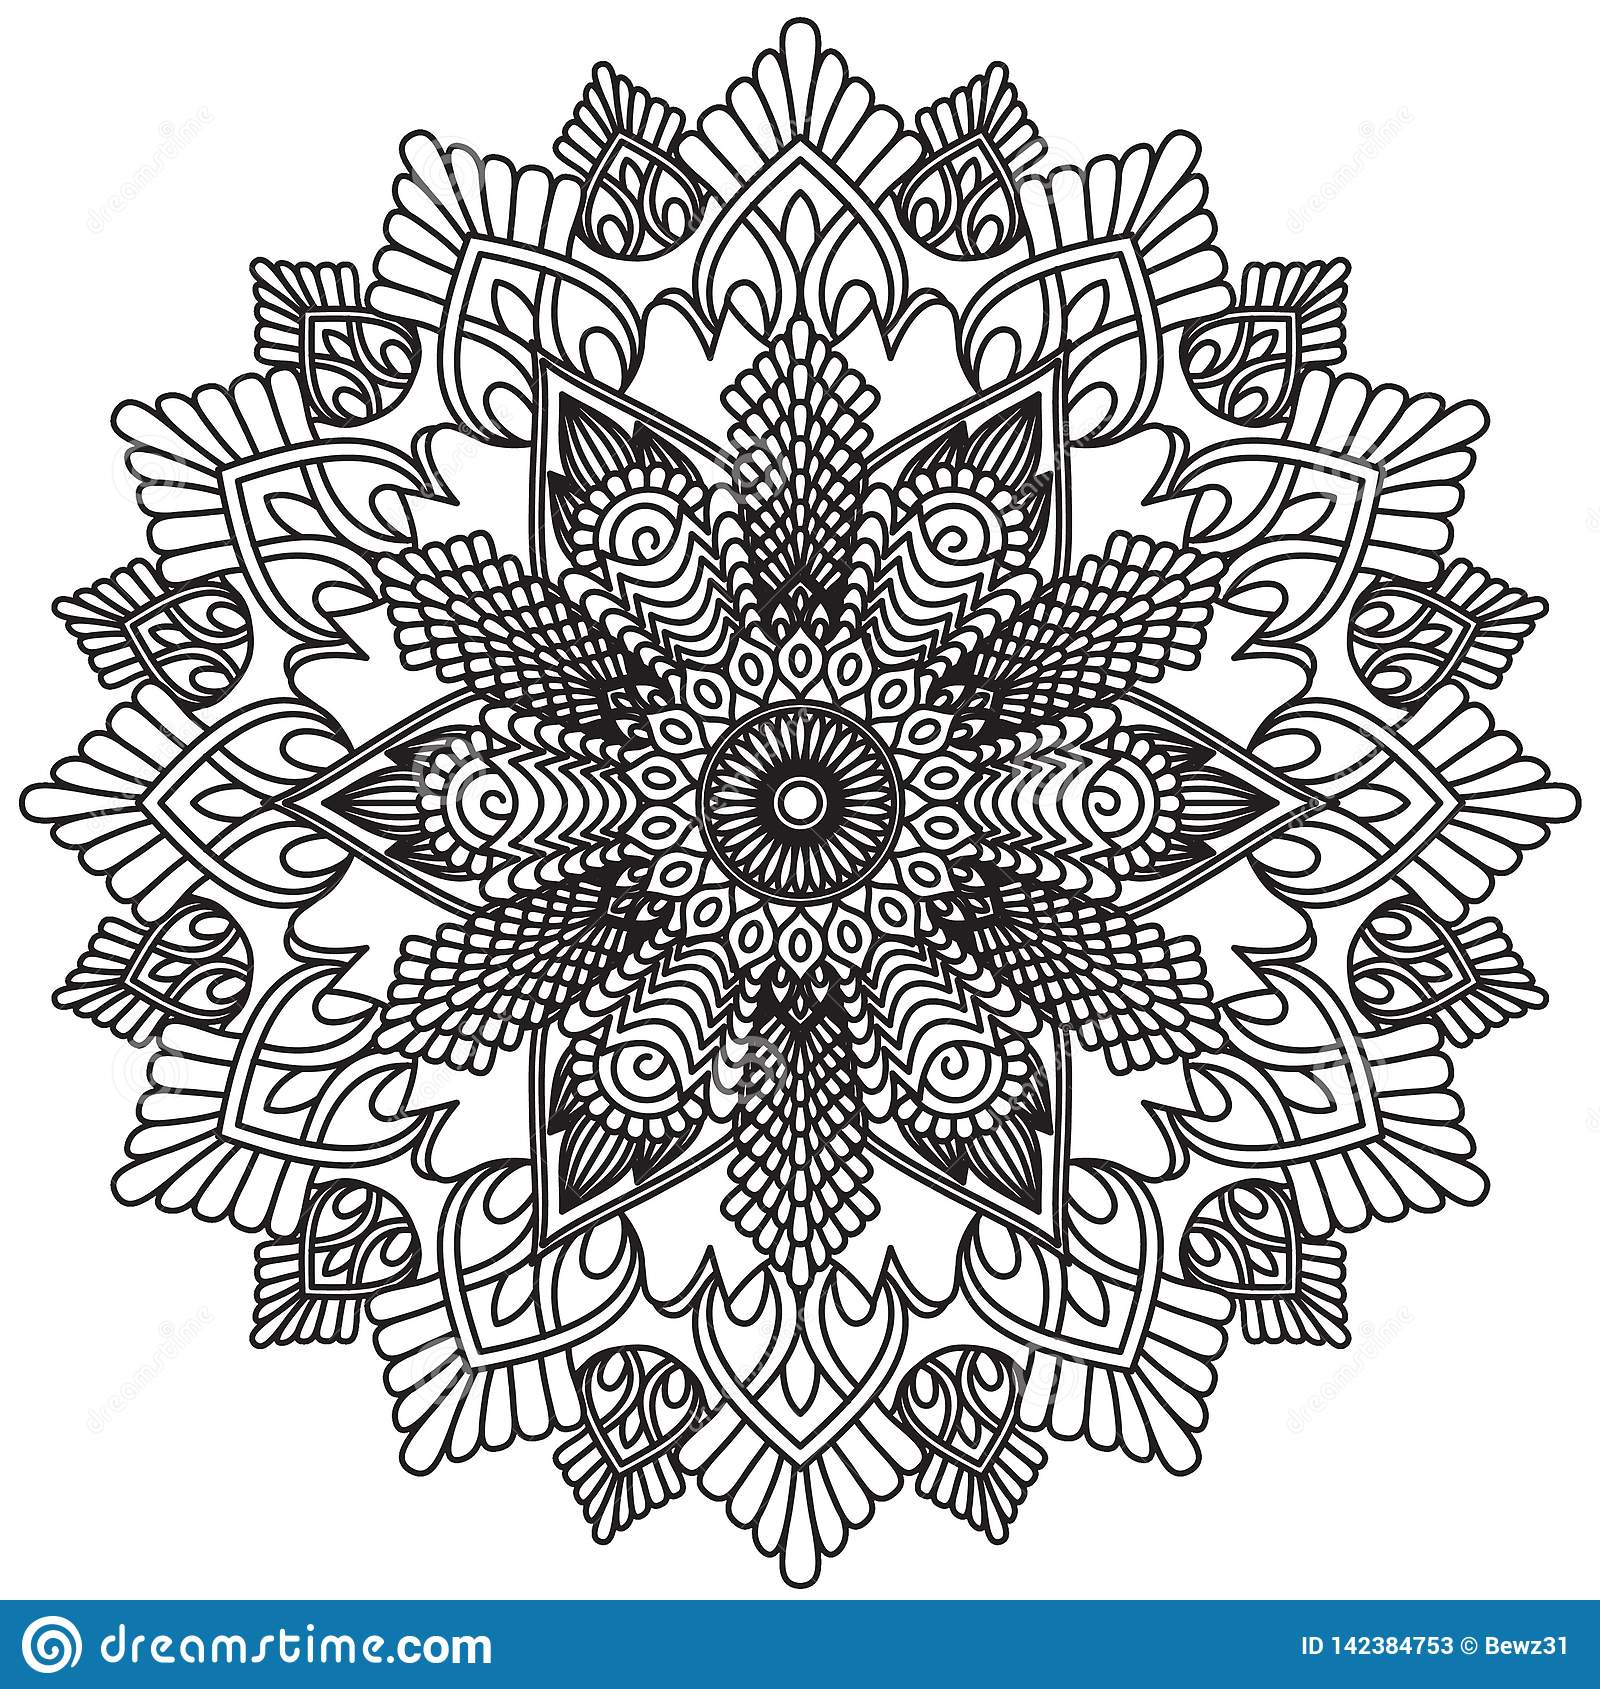 213c9ed581eaa Vintage decorative pattern.Hand drawn background.Suitable for printing on  fabric and paper. Arabic, Islam,Indian, ottoman motifs.You can change the  ...